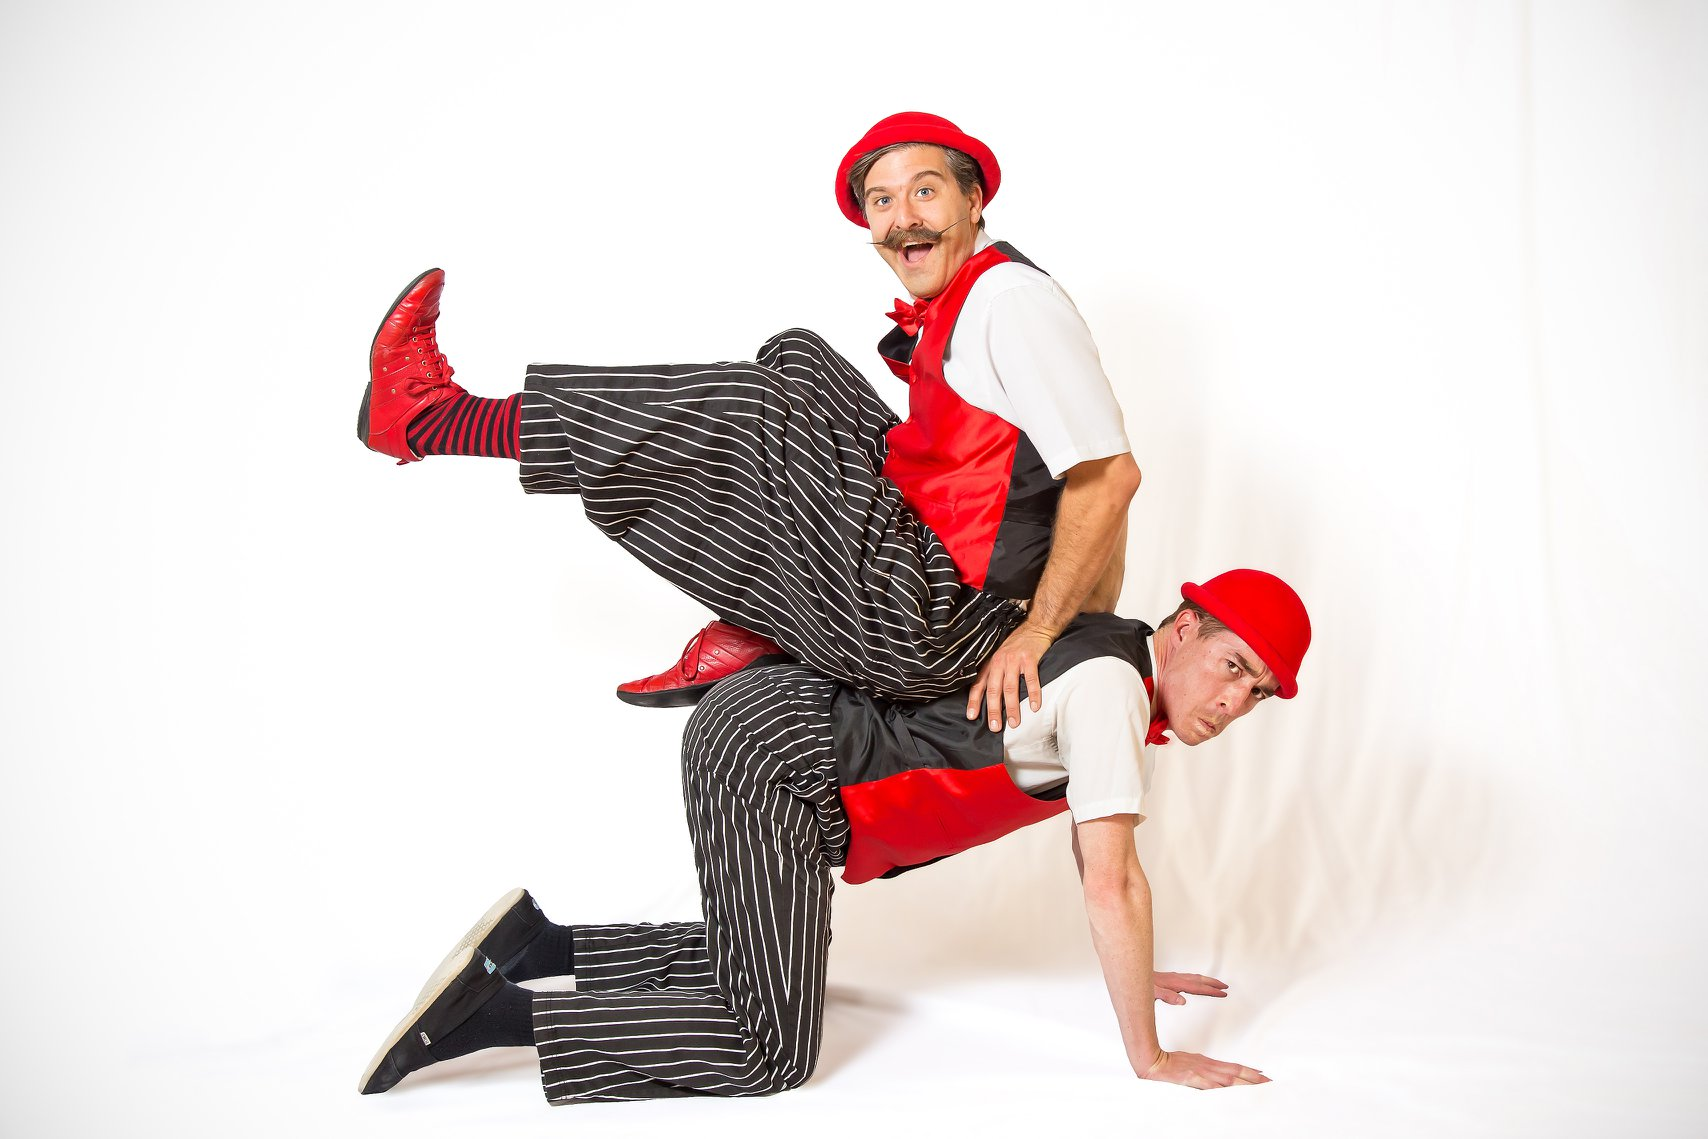 Circus of Smiles Outdoors Event at Siltanen Park in Scotts Valley